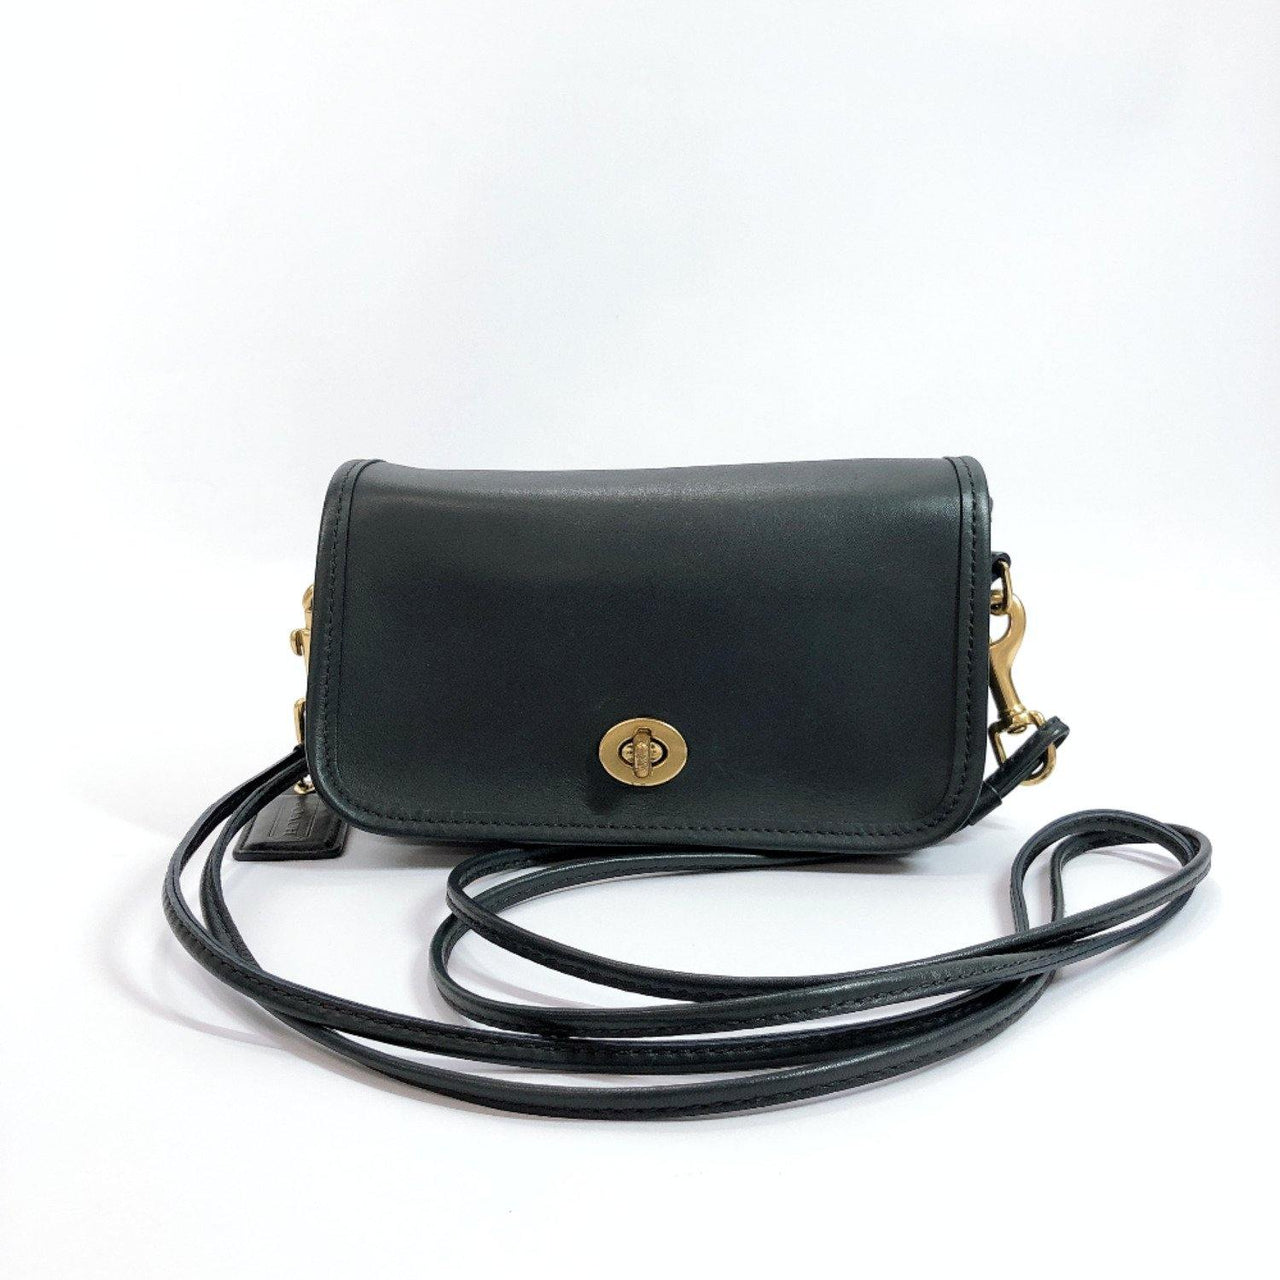 COACH Shoulder Bag 17994 leather black Women Used